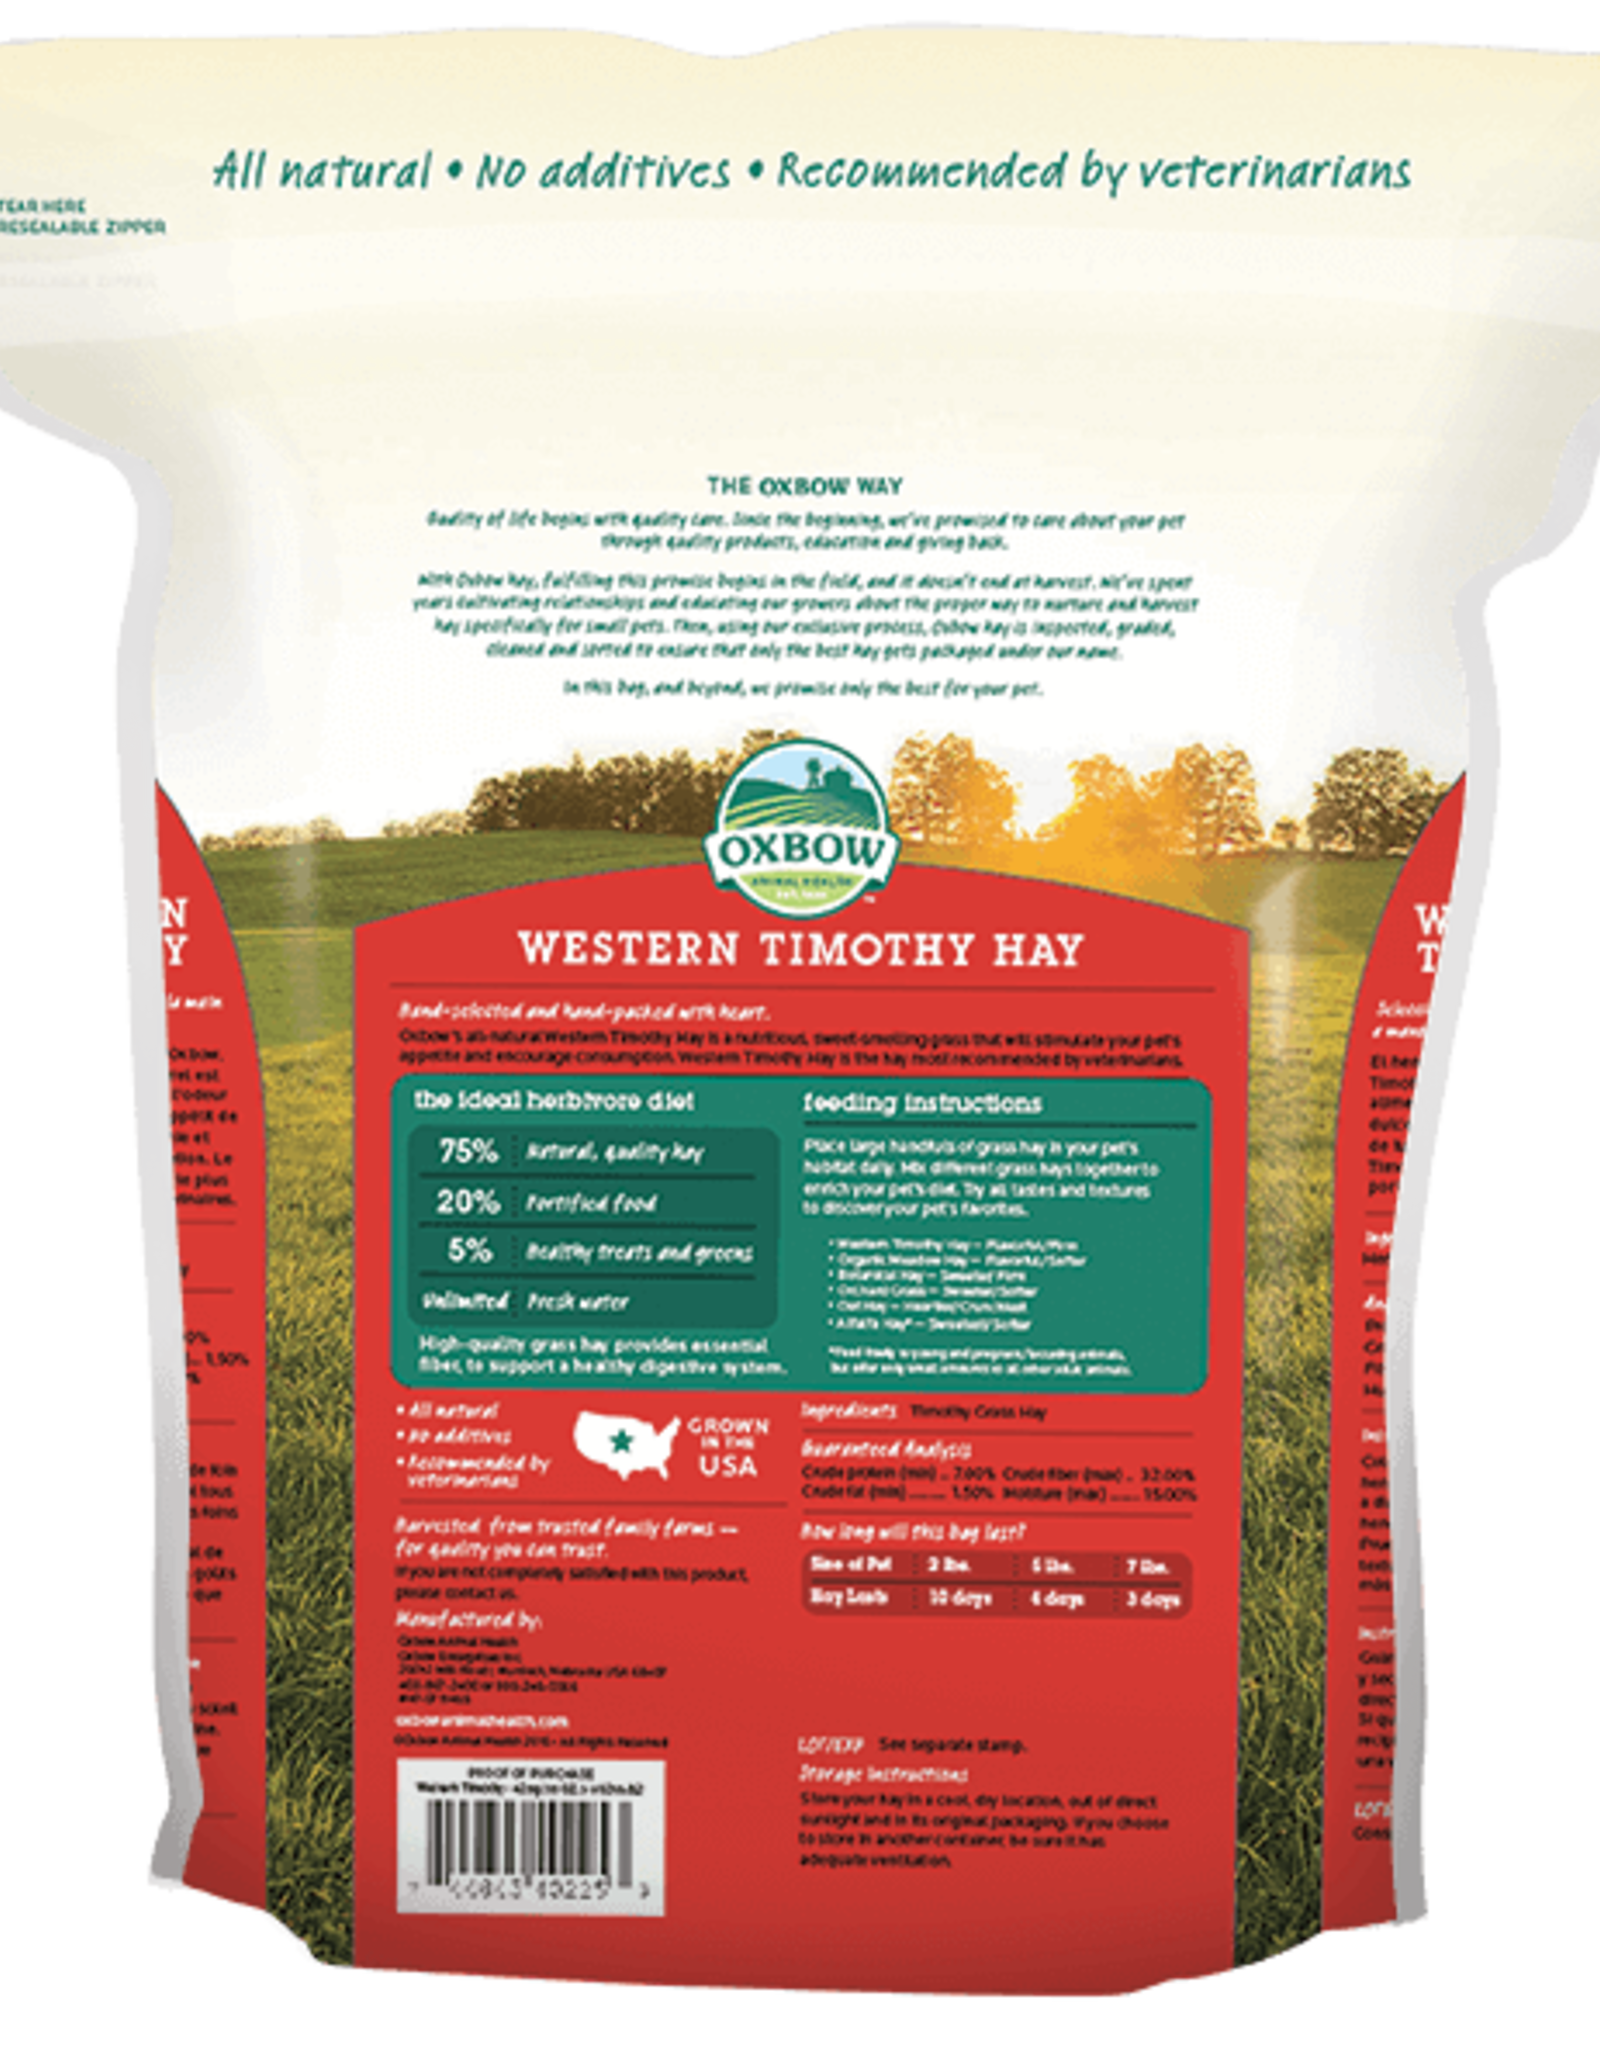 OXBOW PET PRODUCTS OXBOW TIMOTHY HAY 50LBS